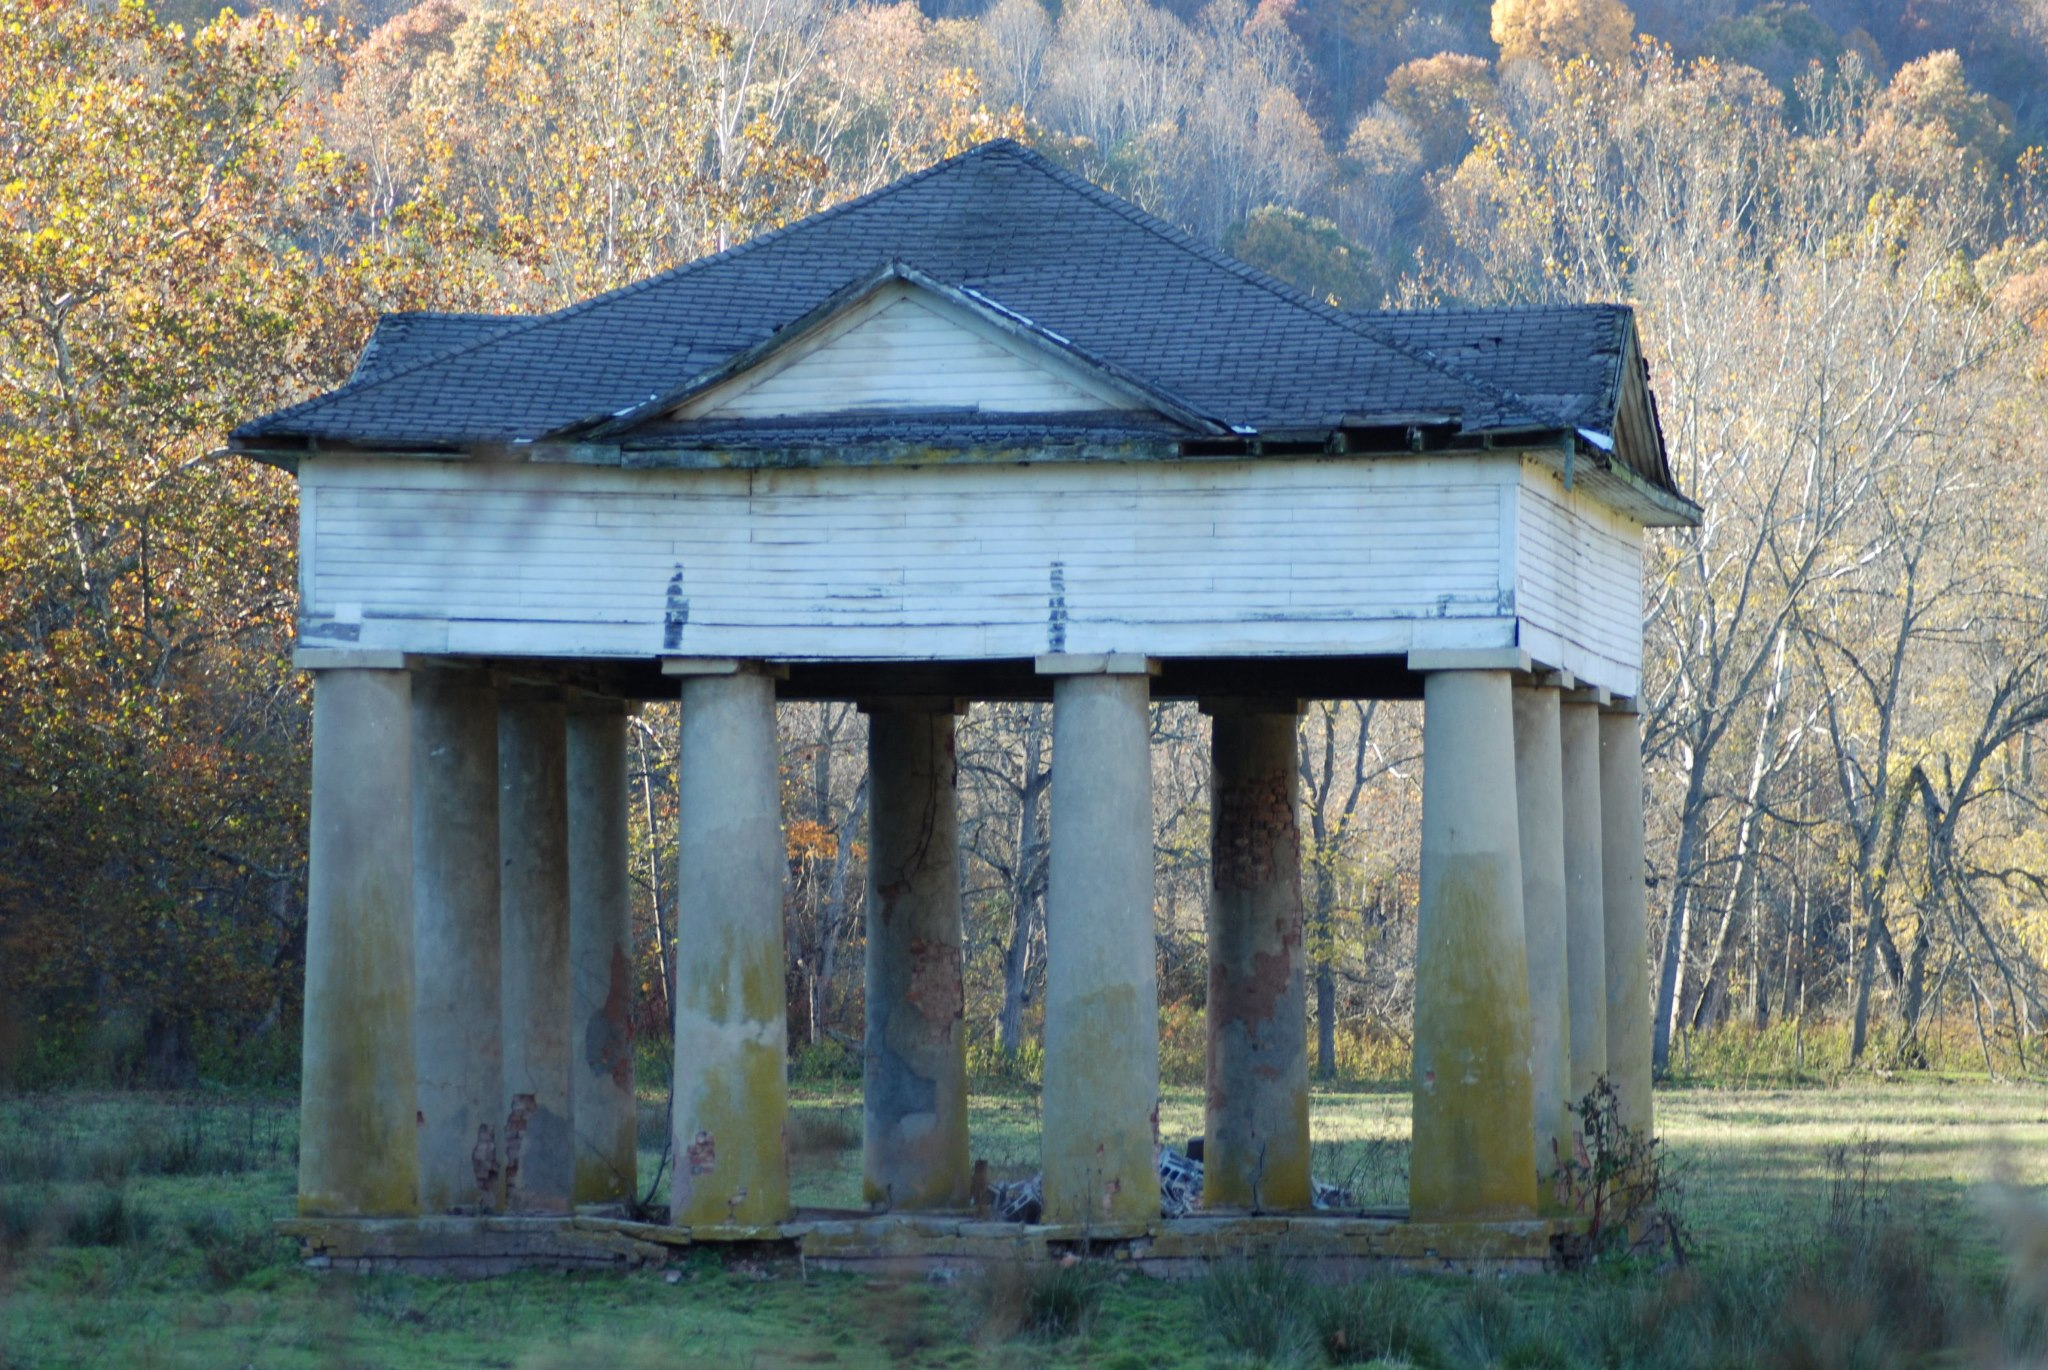 The Blue Pavilion at Blue Sulphur Springs 2013